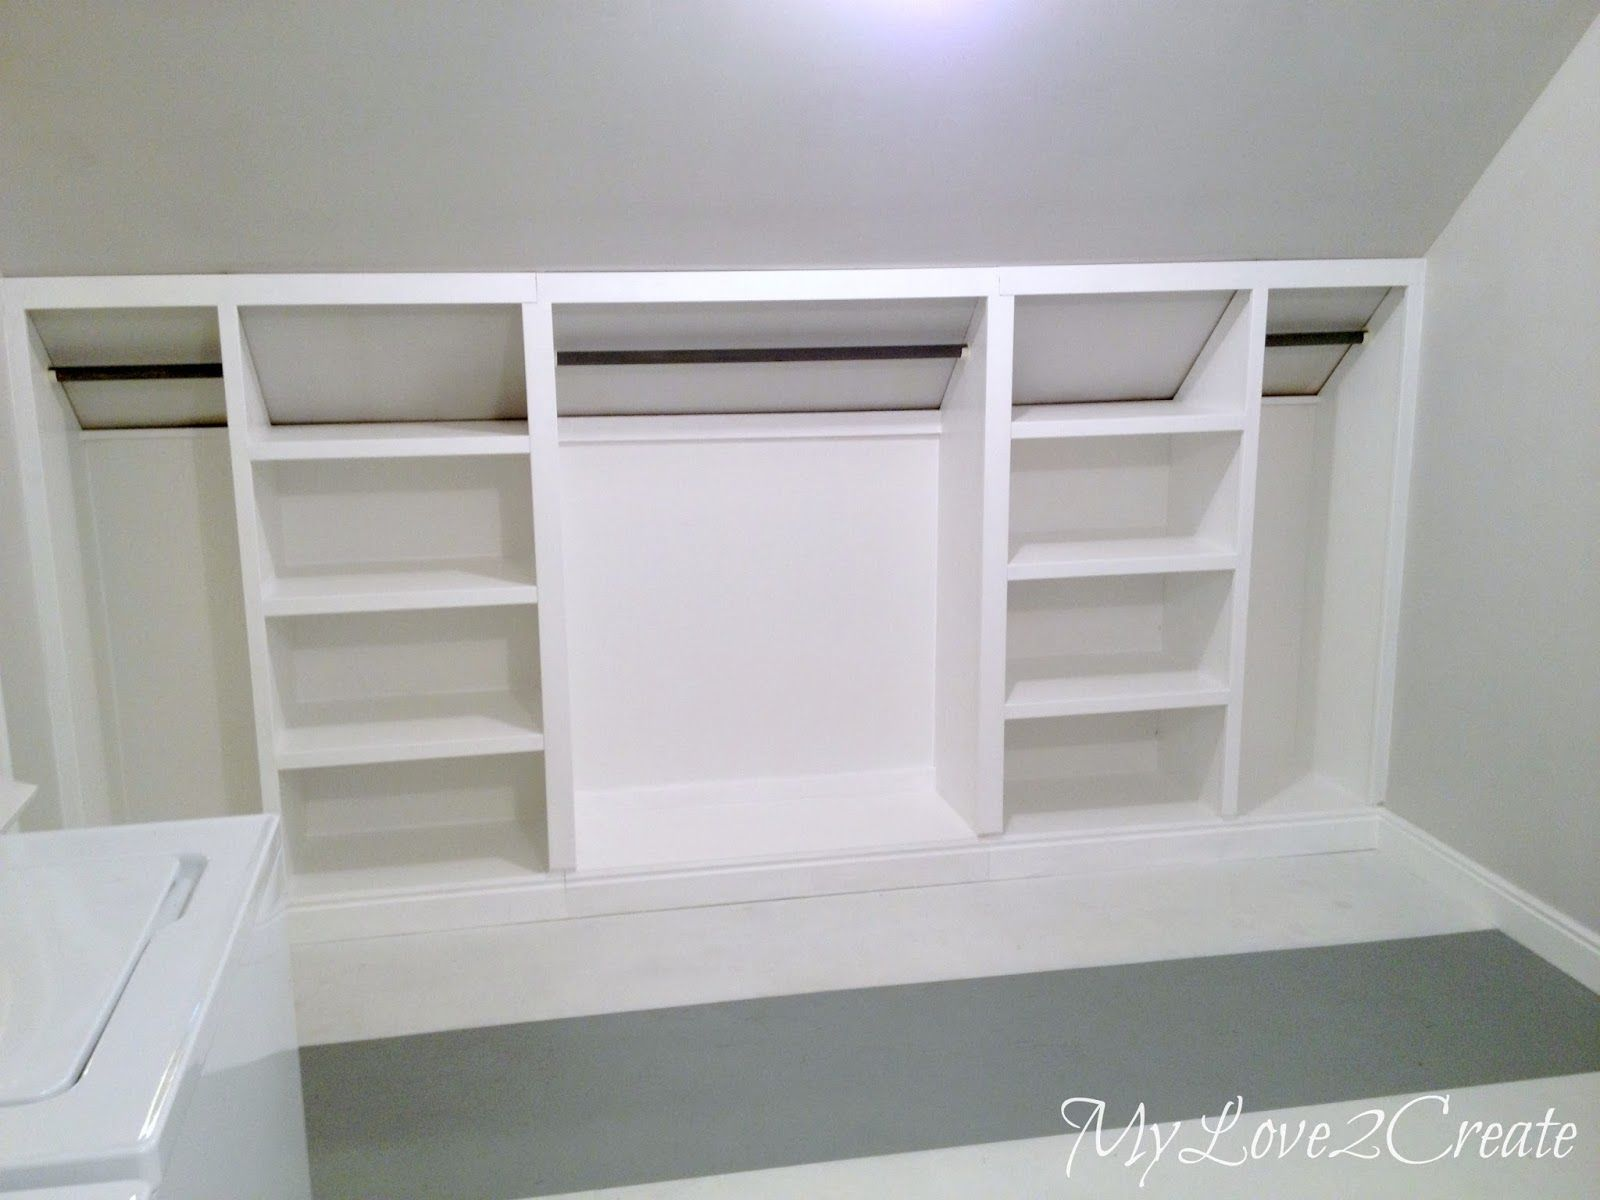 Closet design for slanted ceiling Totally will need this